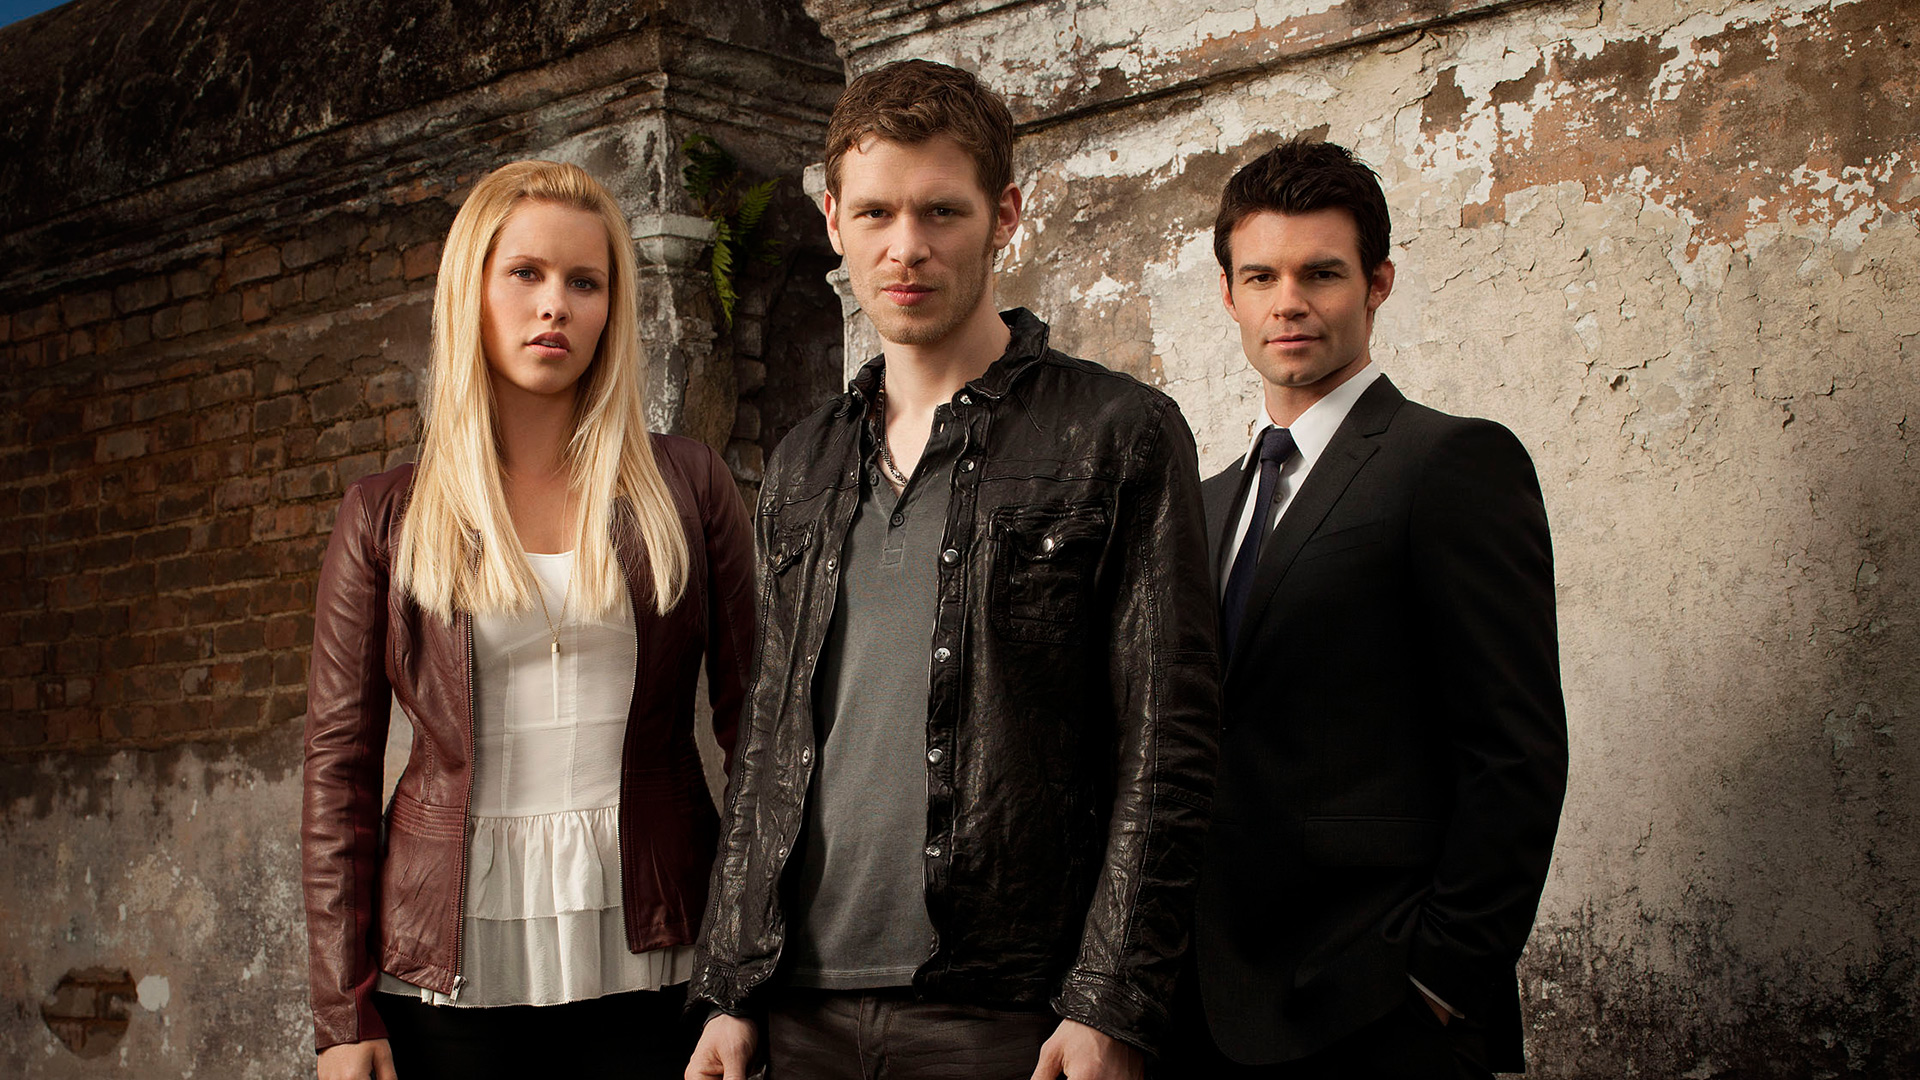 The Originals Wallpapers, Pictures, Images